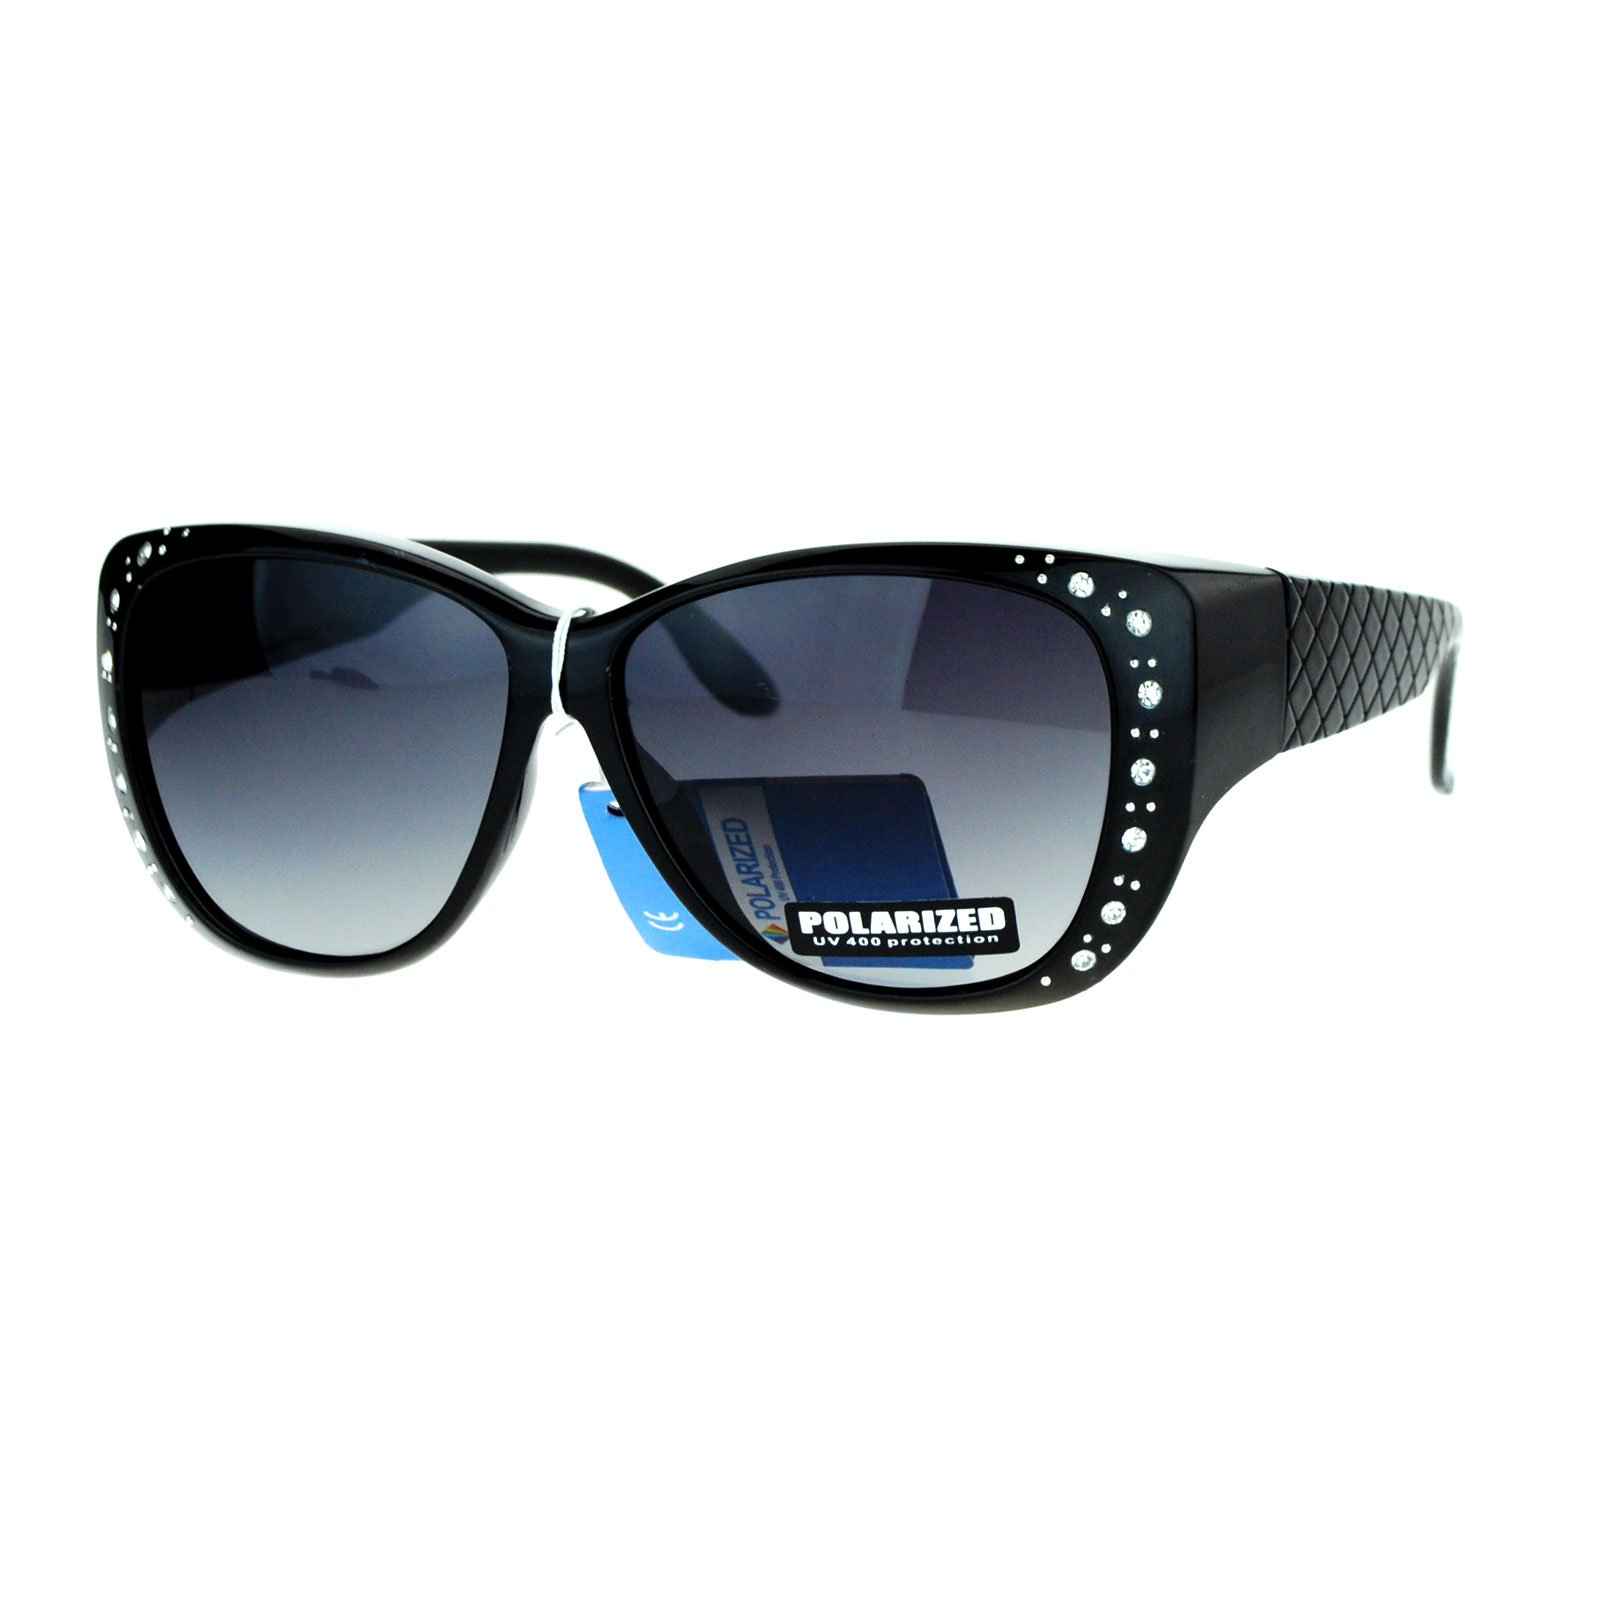 SA106 Polarized 55mm Fit Over OTG Butterfly Rhinestone Diva Sunglasses Shiny Black